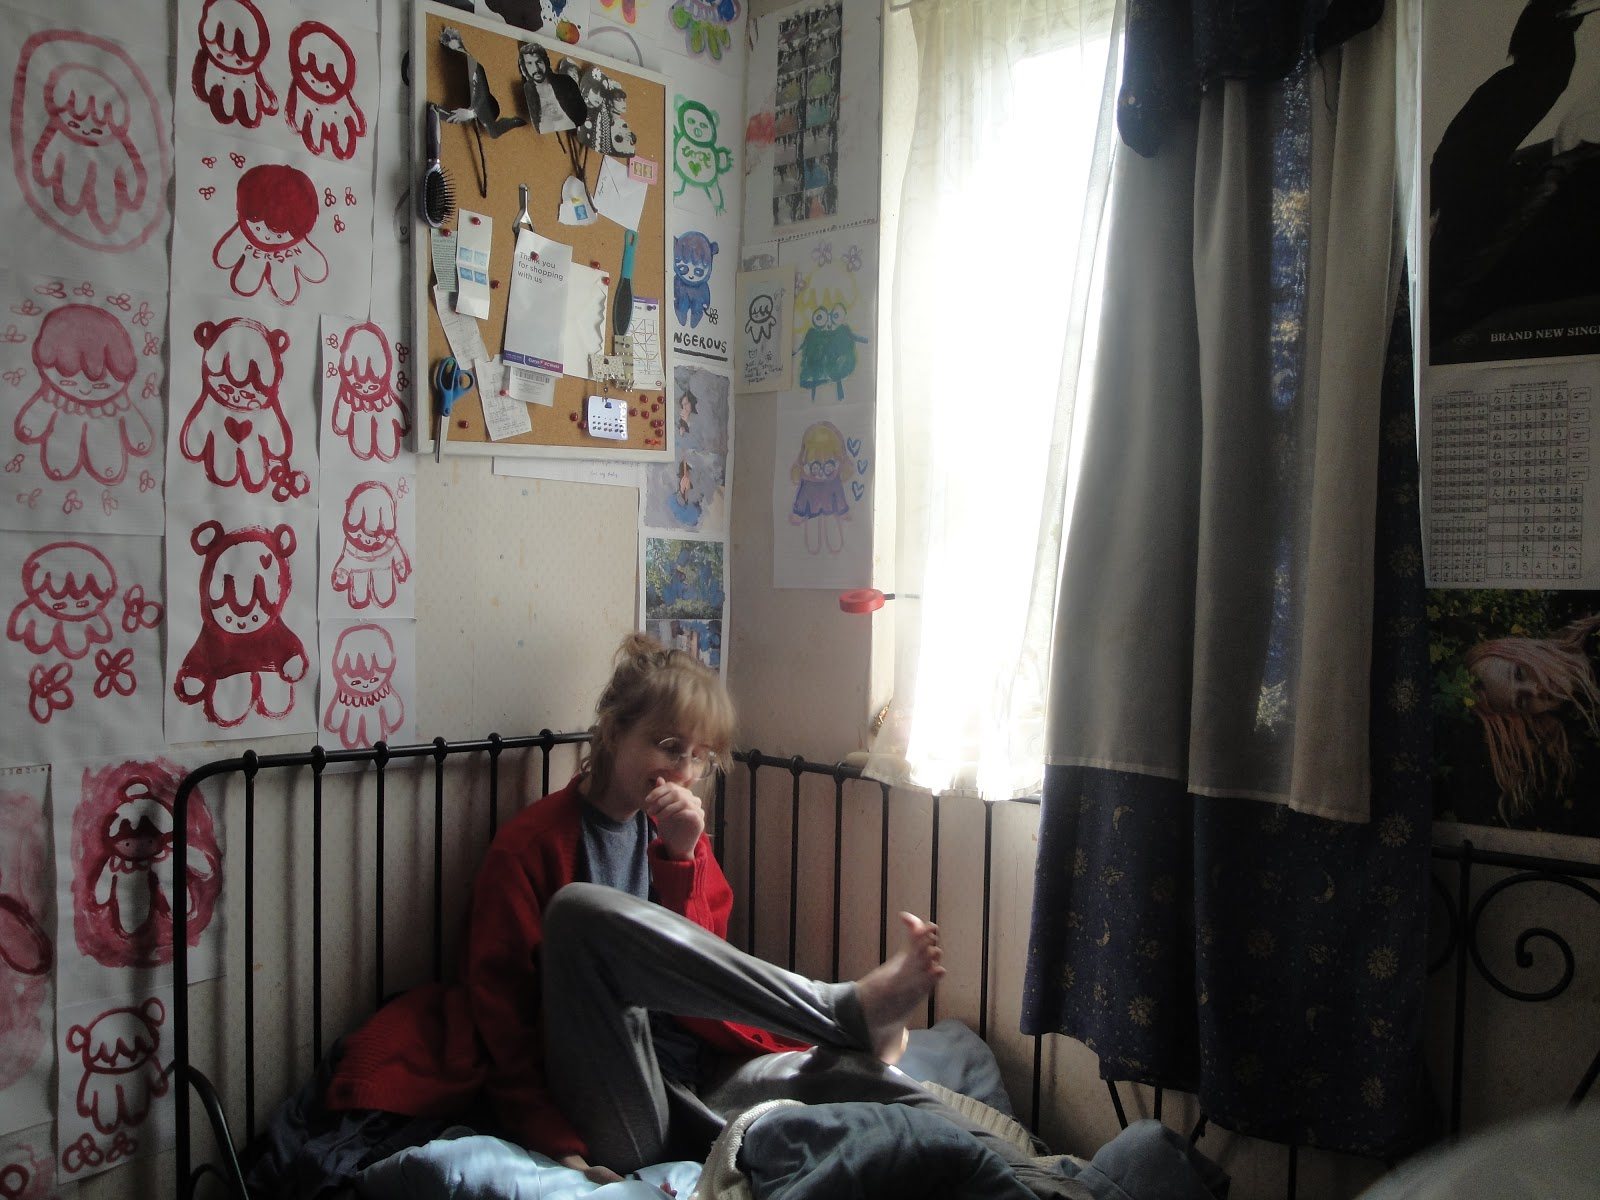 Lilly Ashton My Bedroom Room Tour 2014